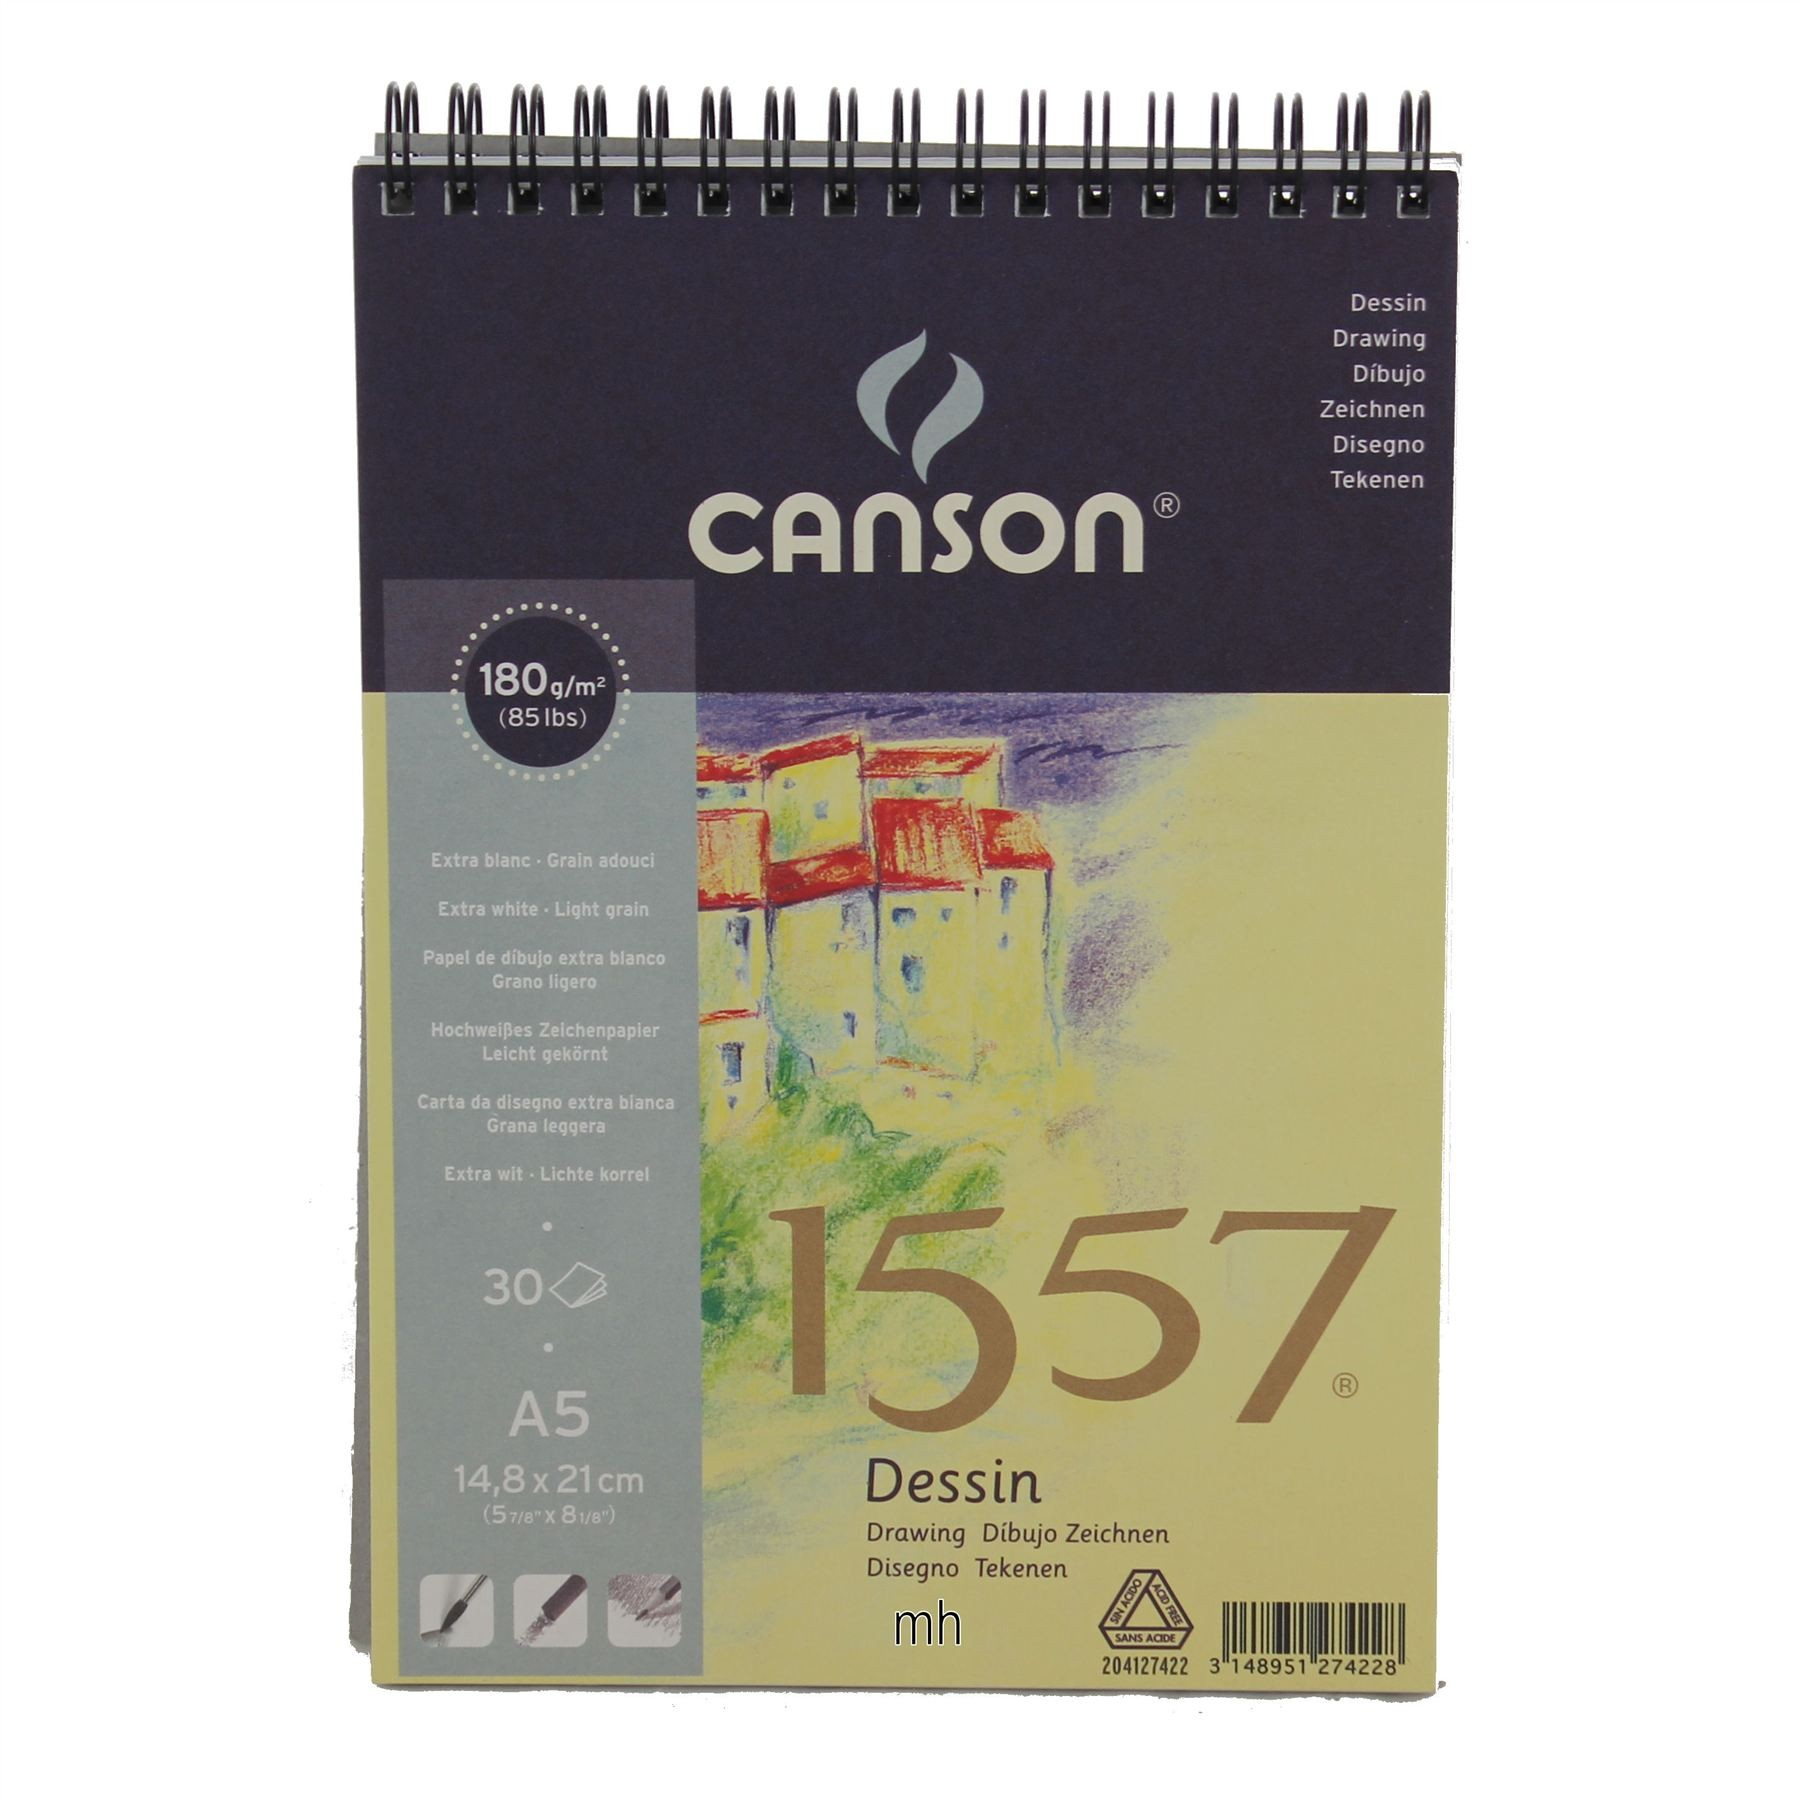 Canson 1557 Spiral Pad Drawing sketching paper 180gsm